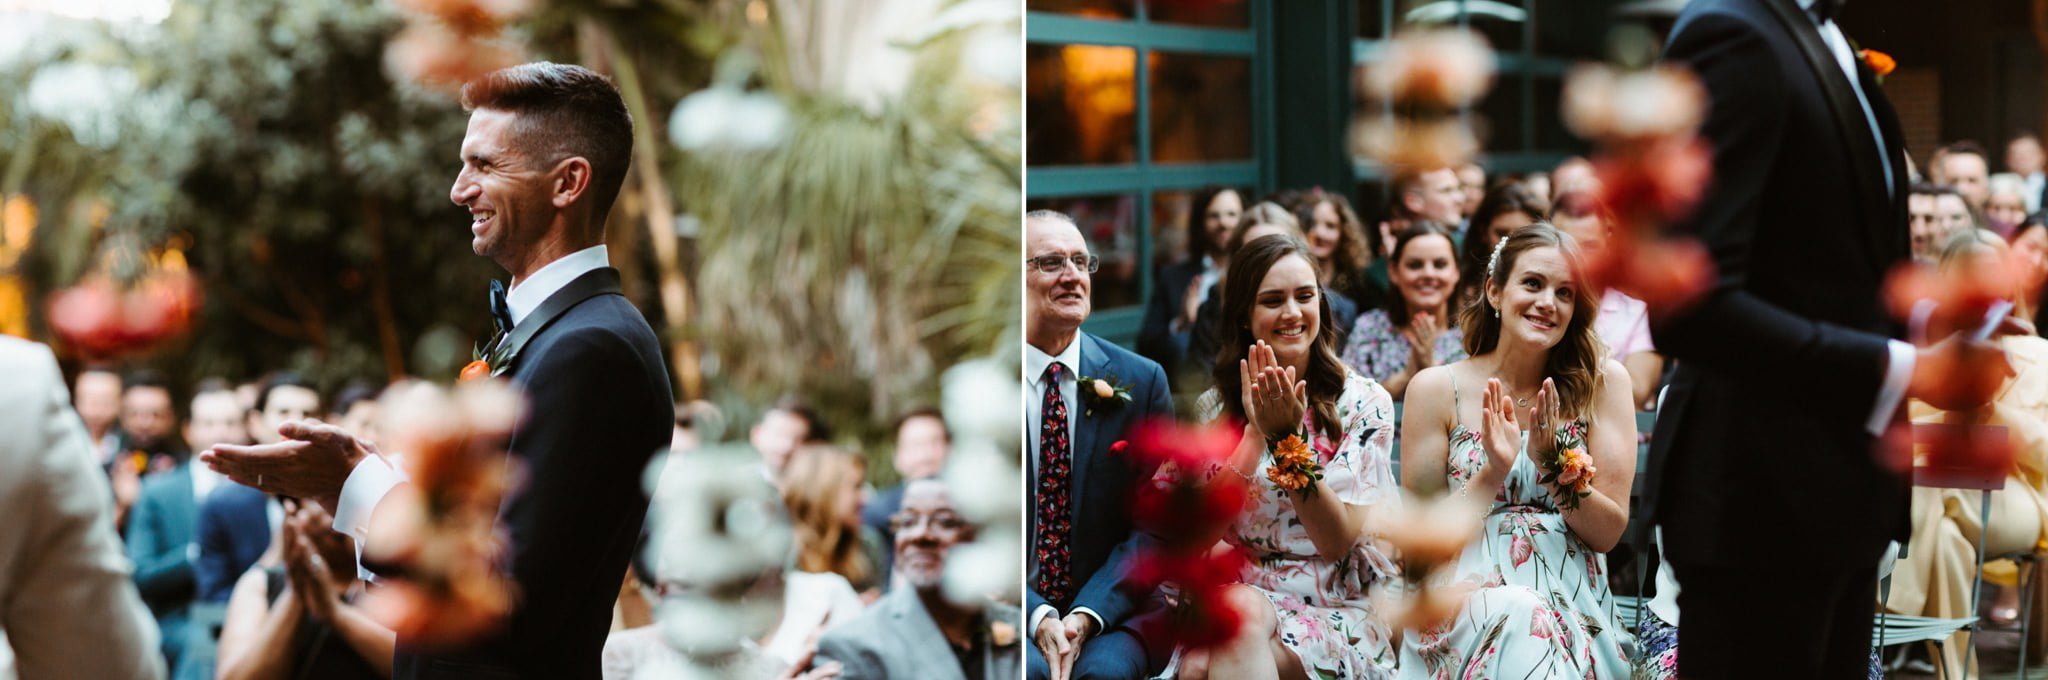 dtla wedding photographer 080